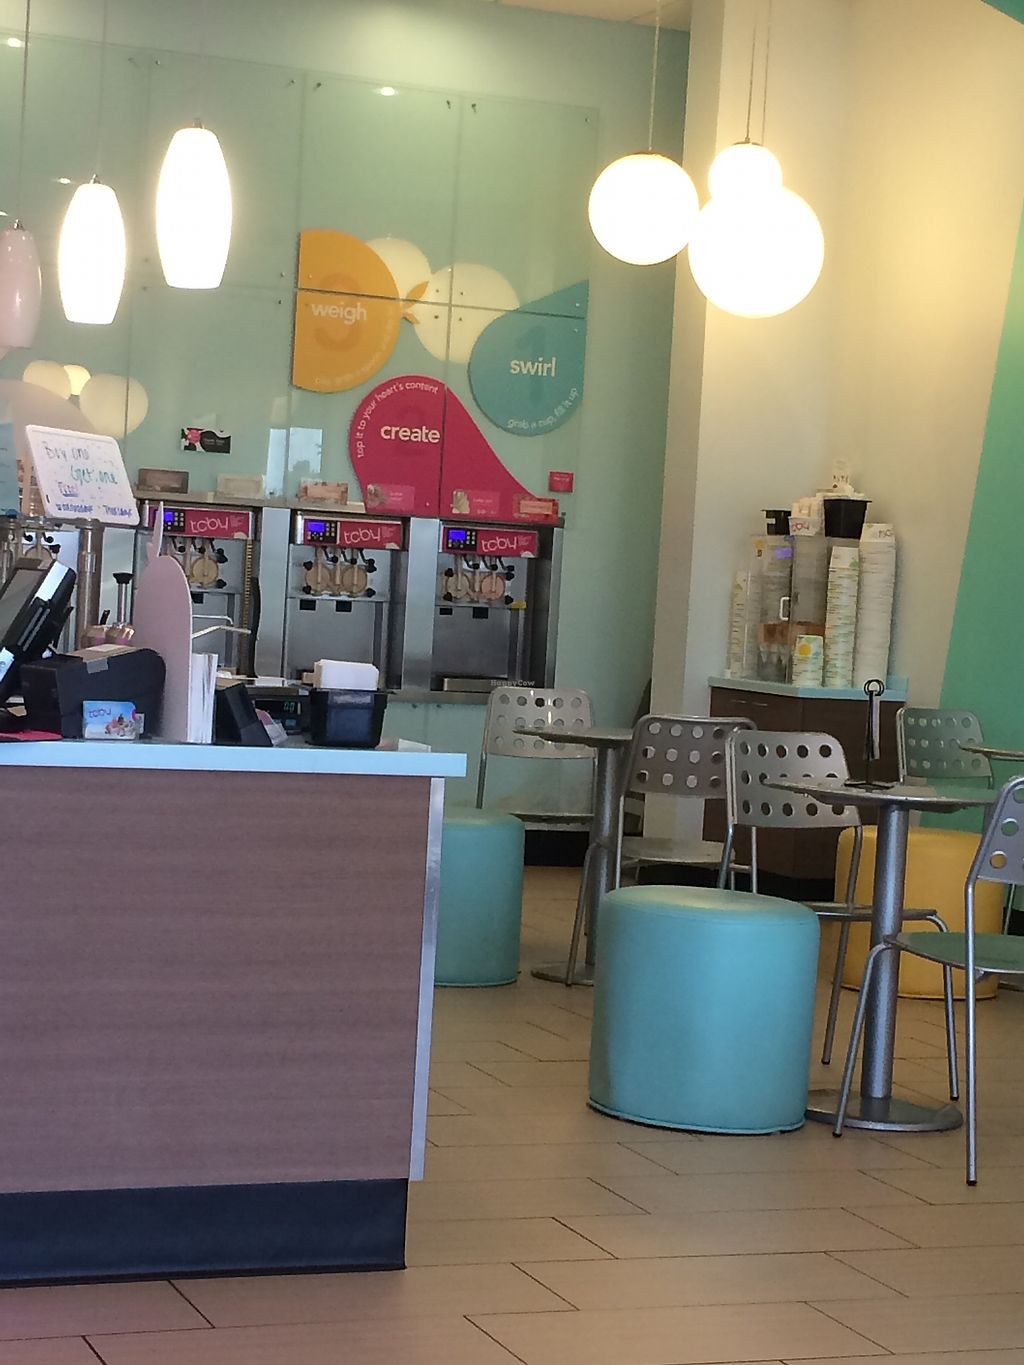 """Photo of CLOSED: TCBY  by <a href=""""/members/profile/fruitiJulie"""">fruitiJulie</a> <br/>inside  <br/> July 30, 2017  - <a href='/contact/abuse/image/97381/286864'>Report</a>"""